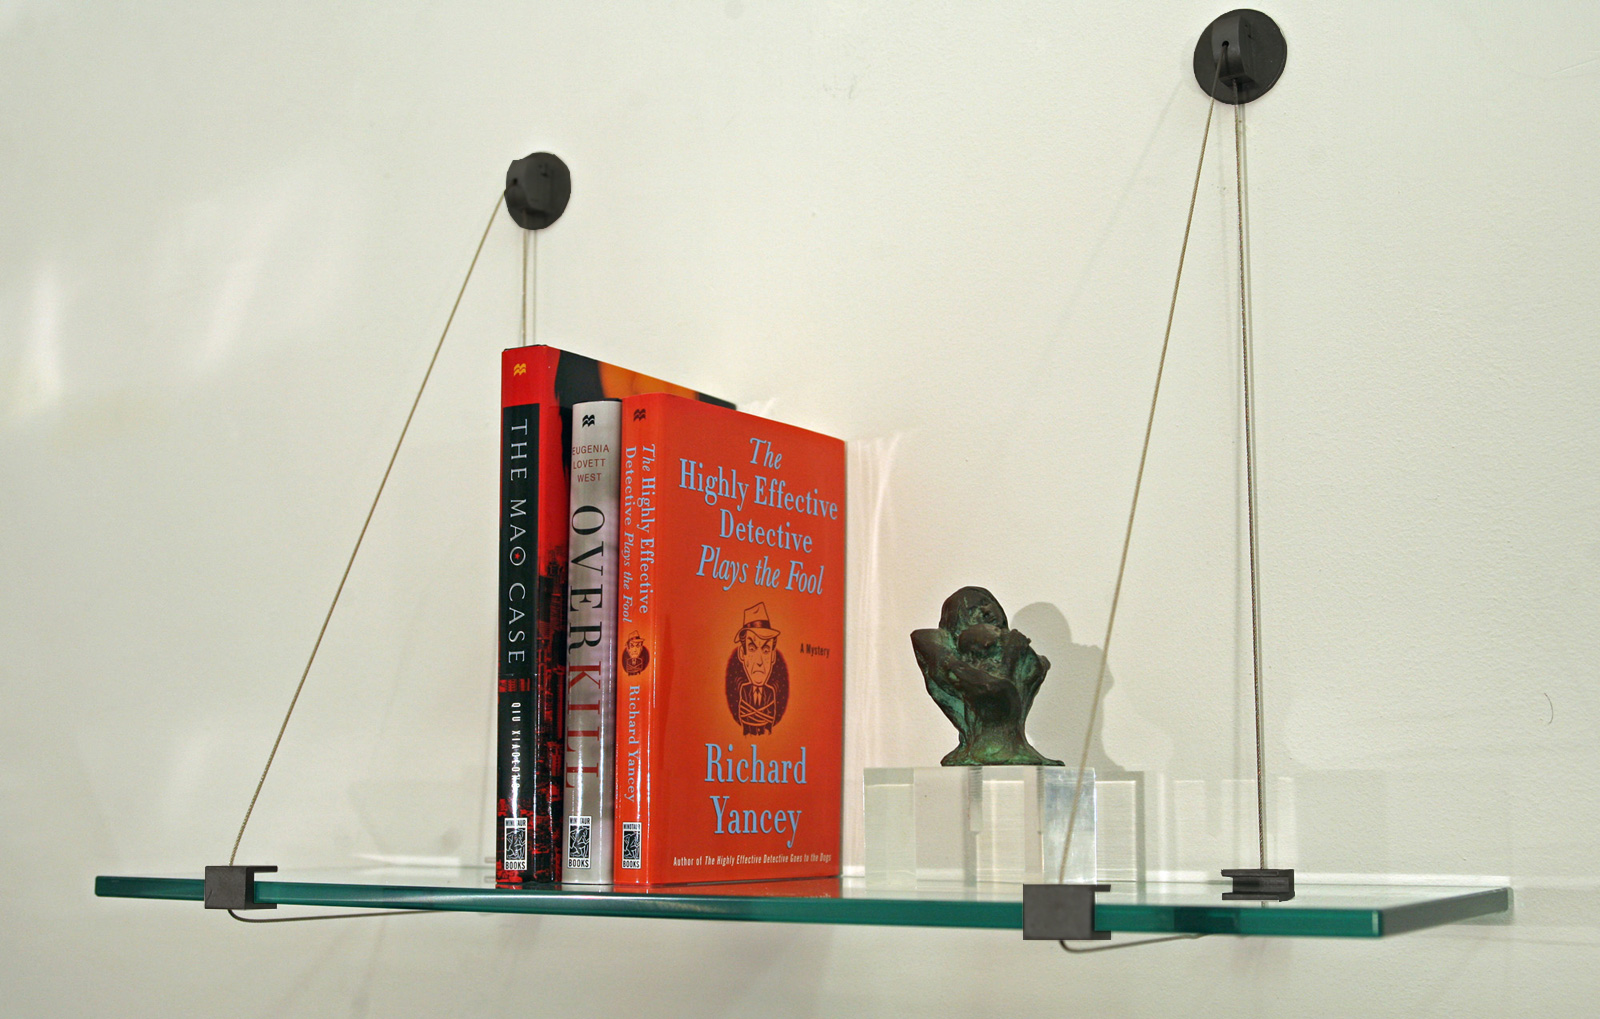 Tempered Glass Shelf - 6 Inch Deep in Wall Mounted Shelves